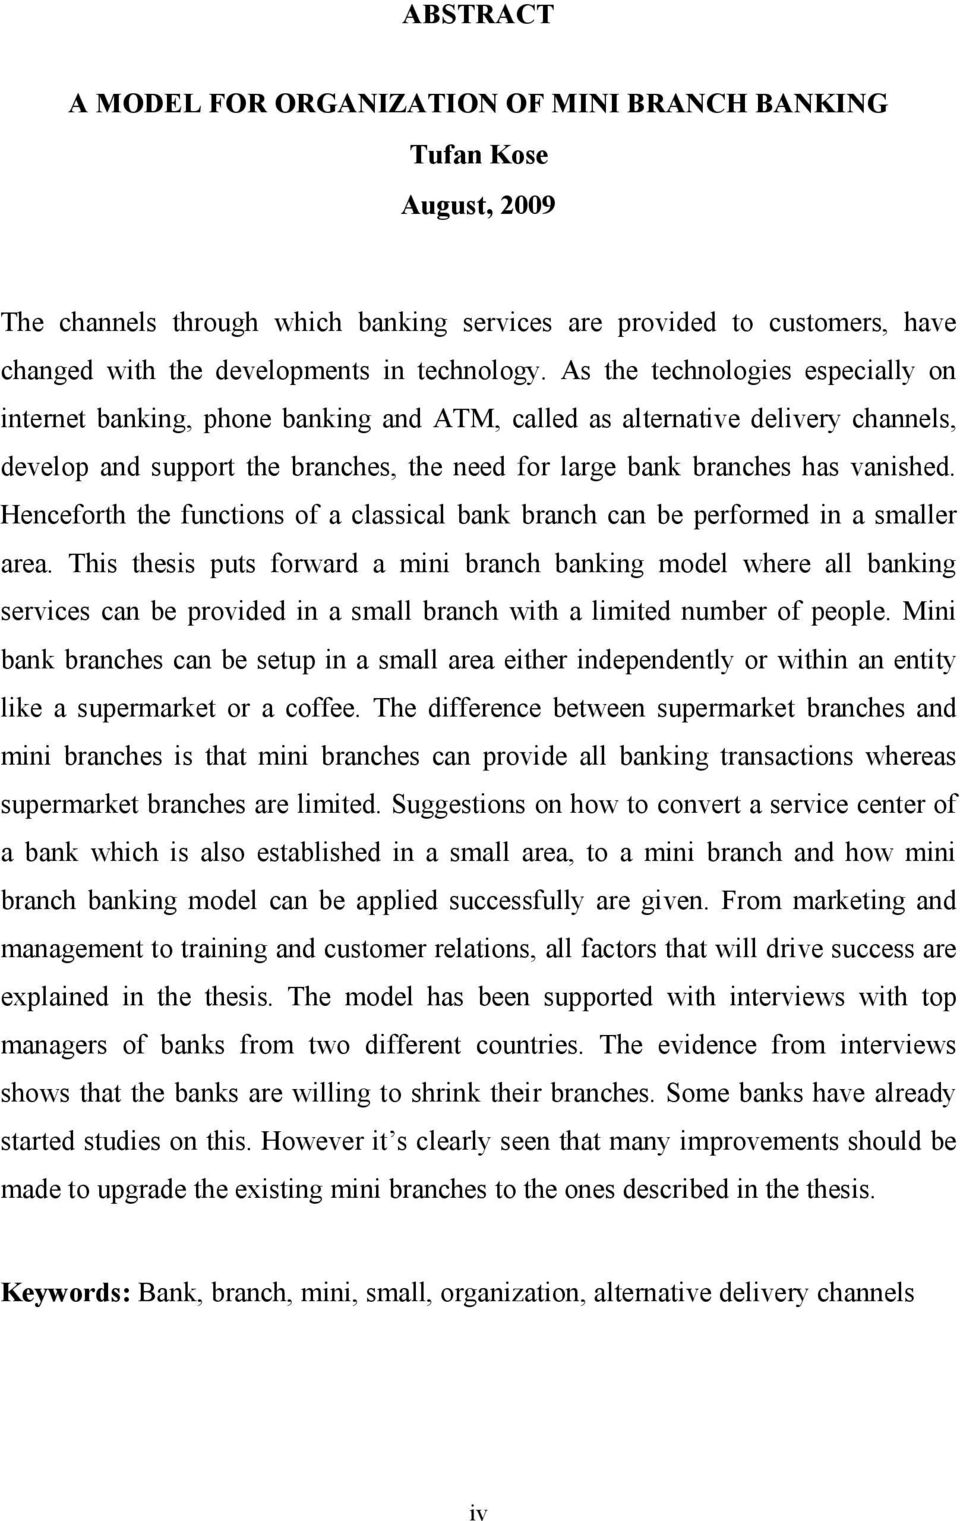 Henceforth the functions of a classical bank branch can be performed in a smaller area.